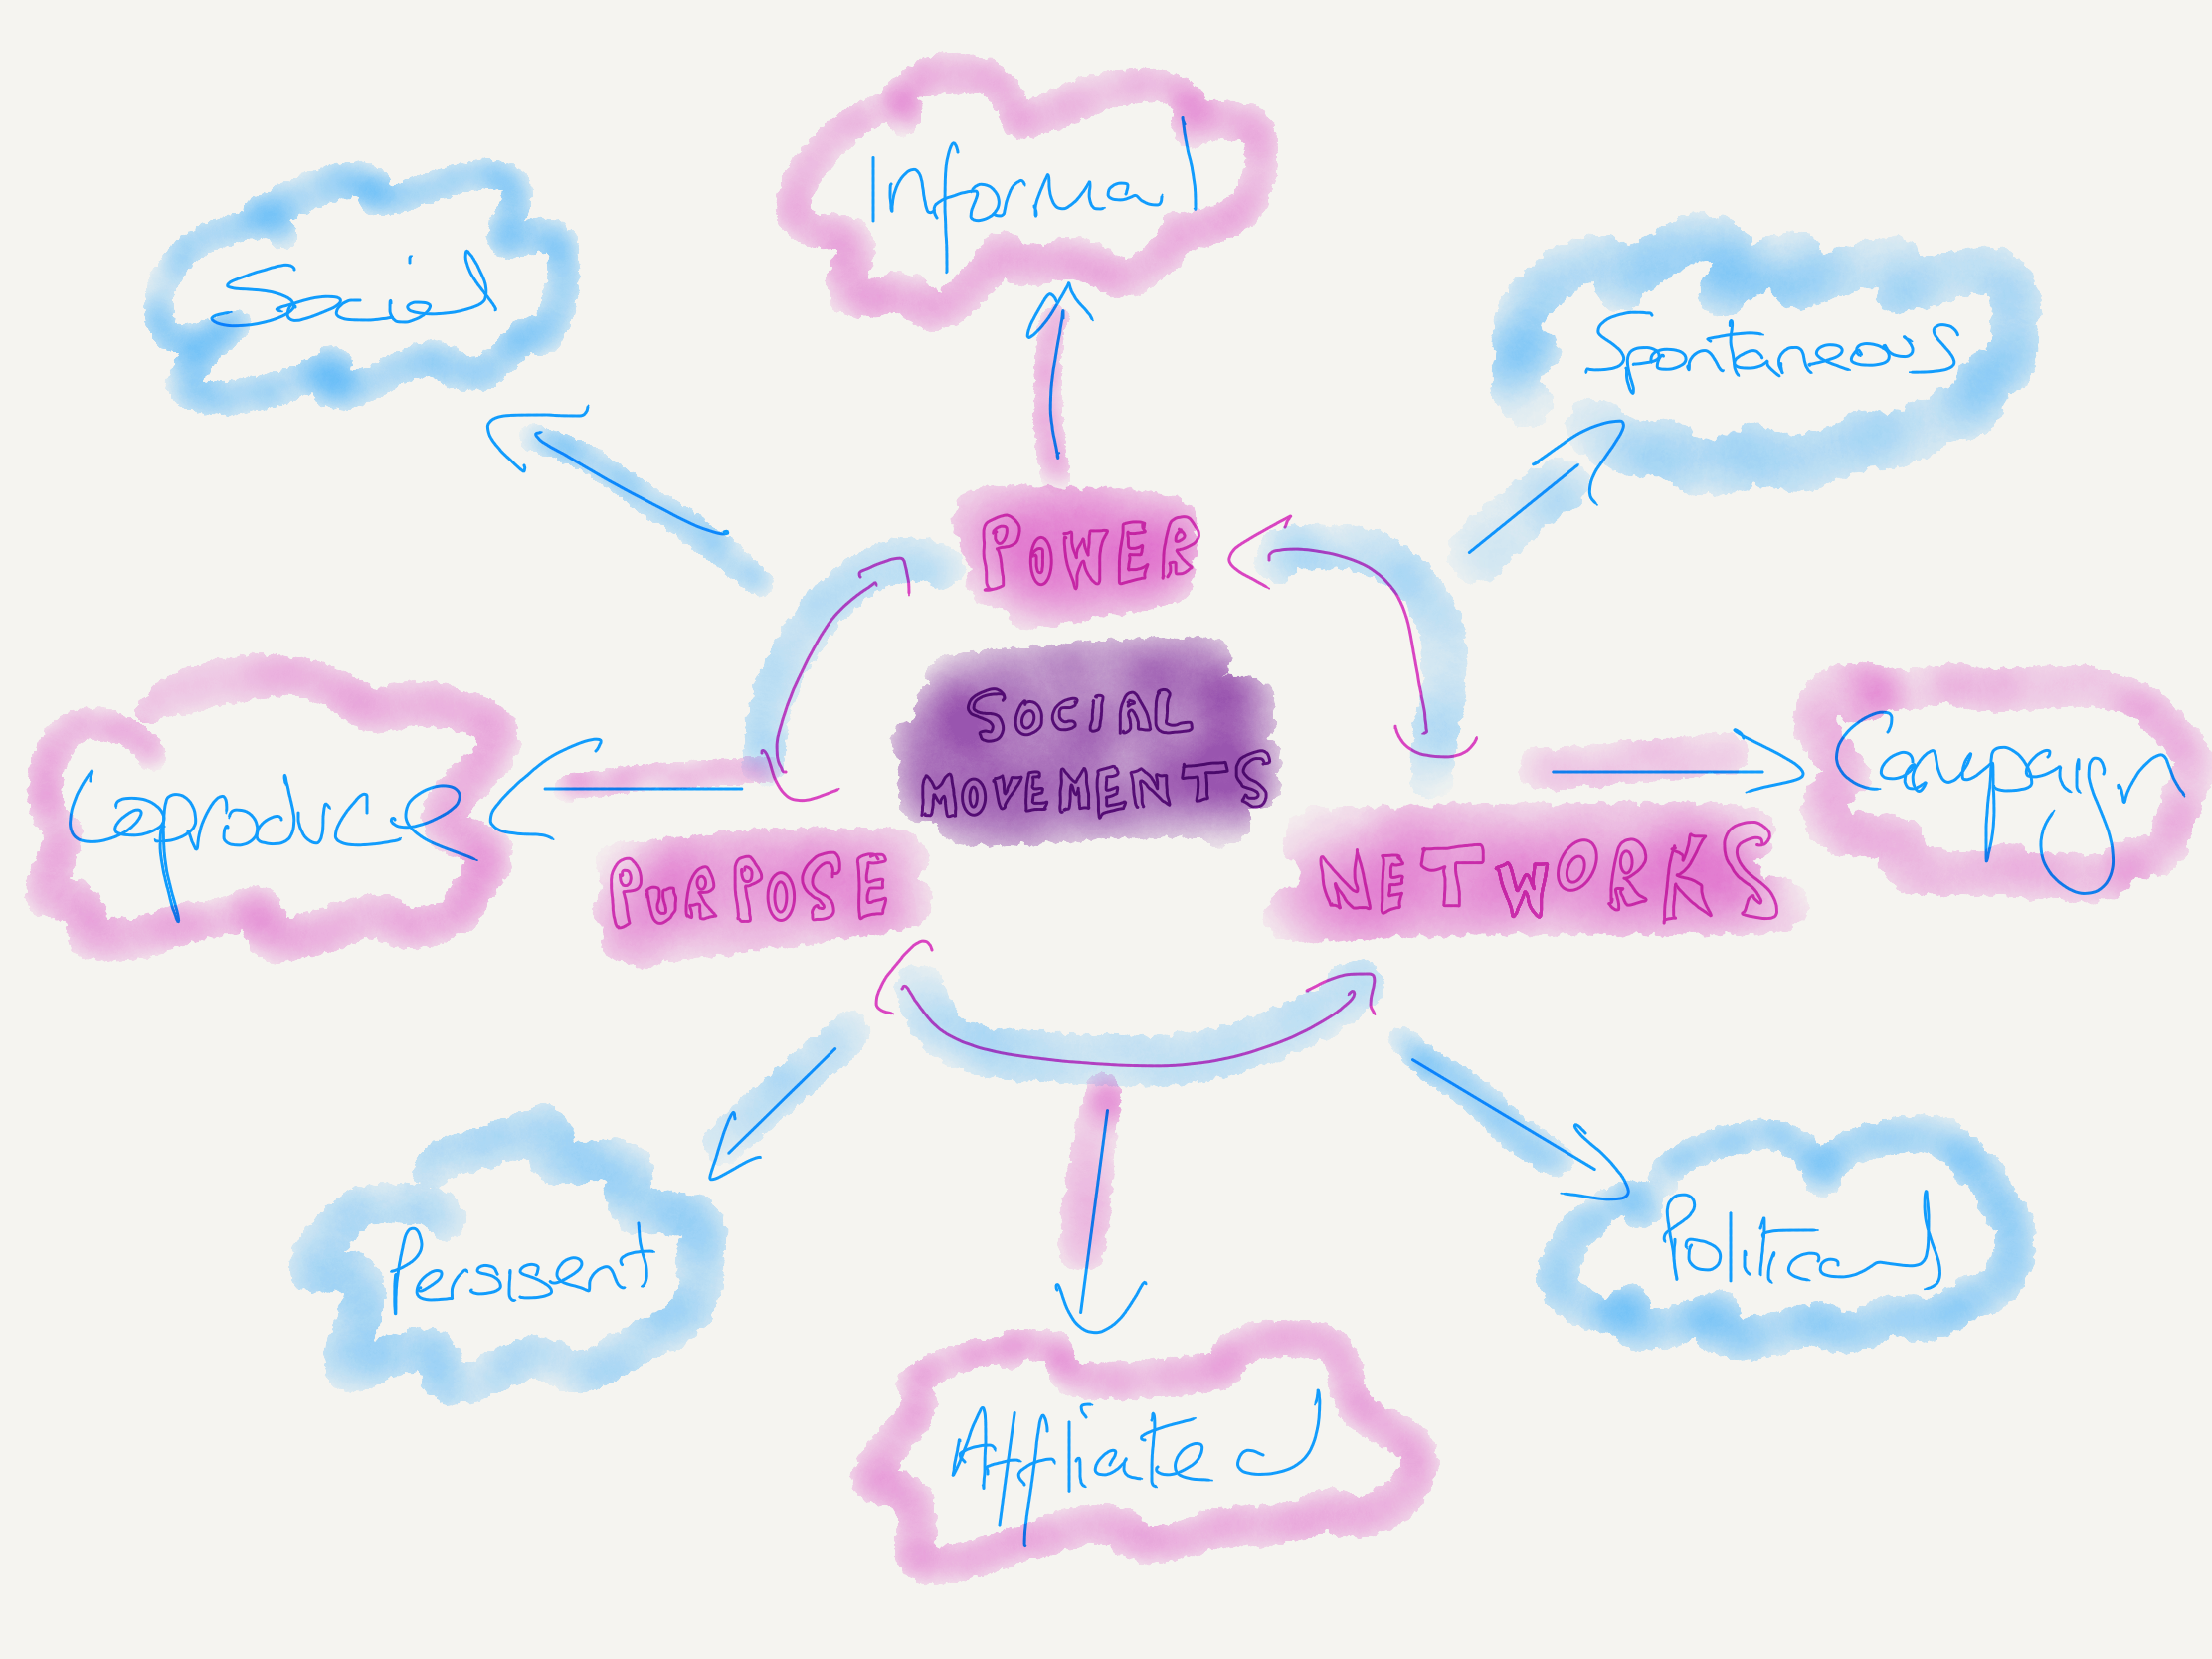 Social movements mind map